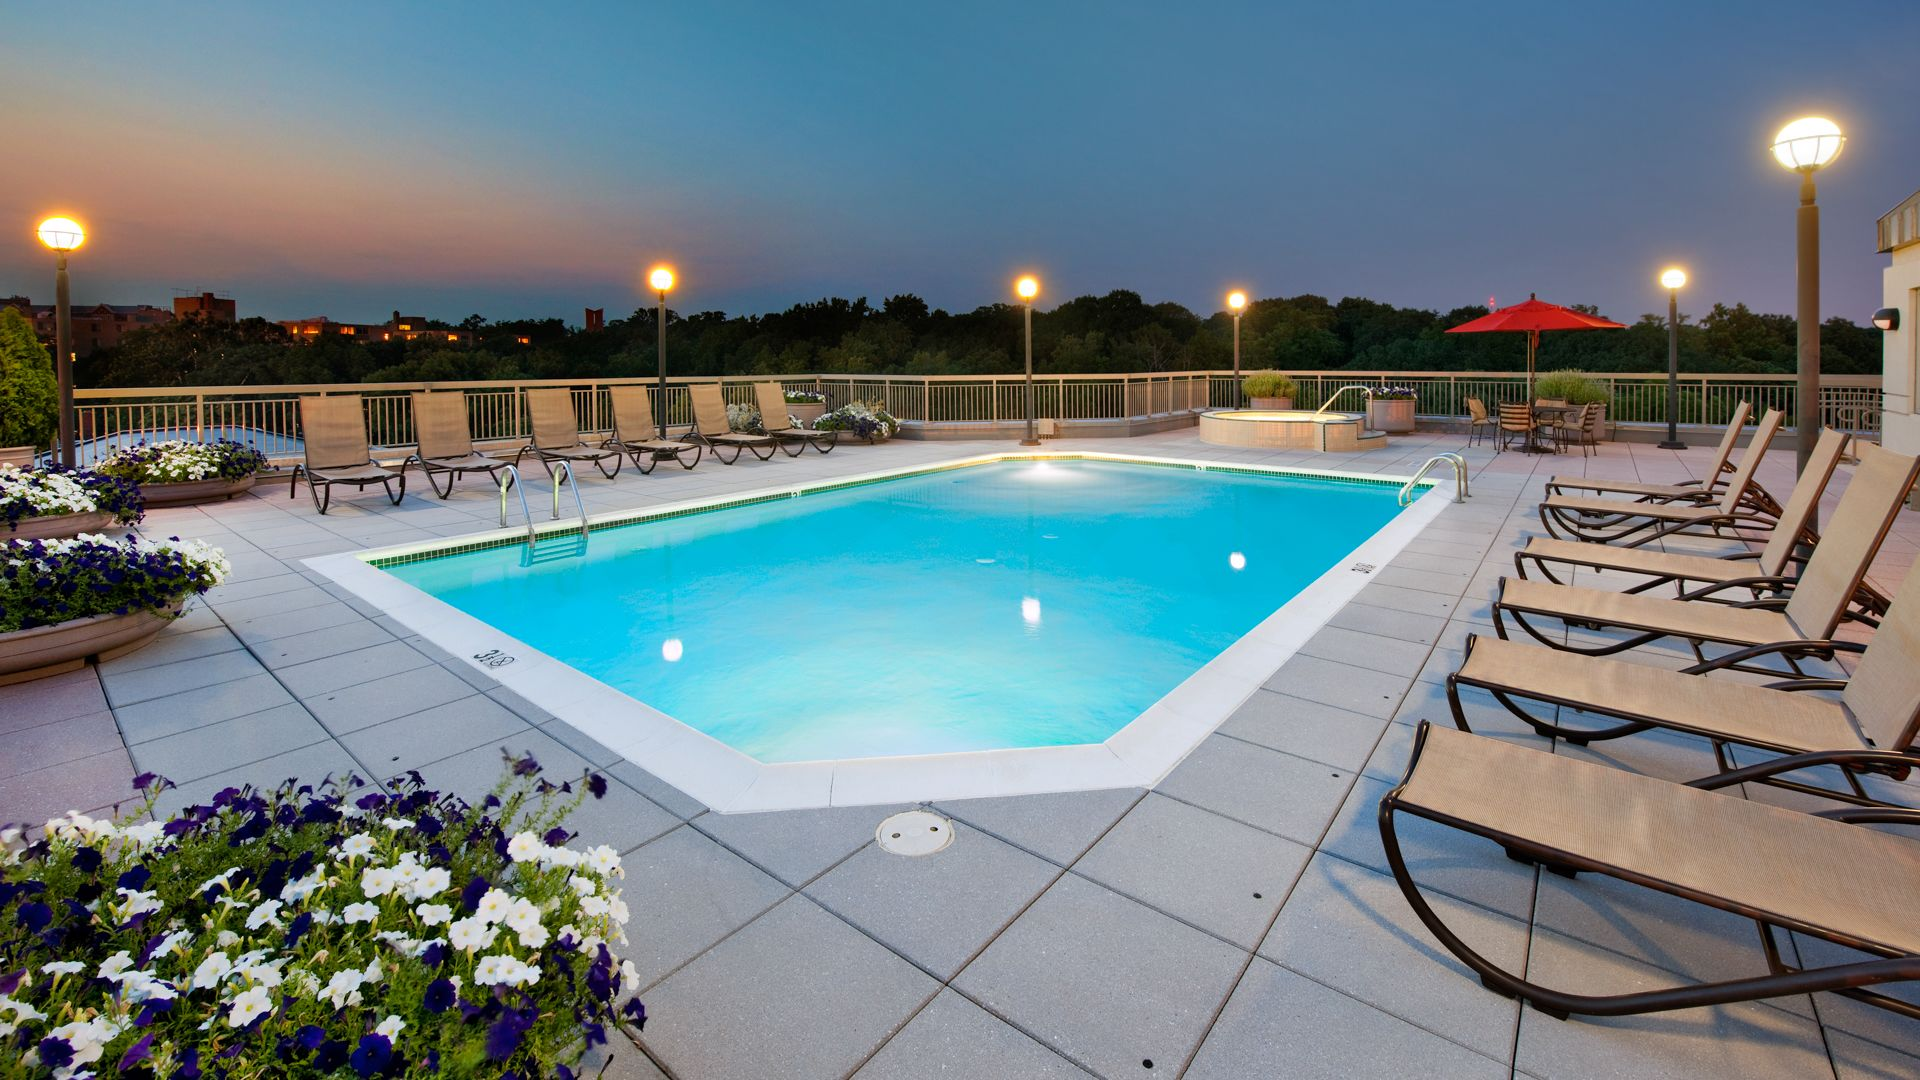 Park Connecticut Apartments - Rooftop Pool and Sun Deck